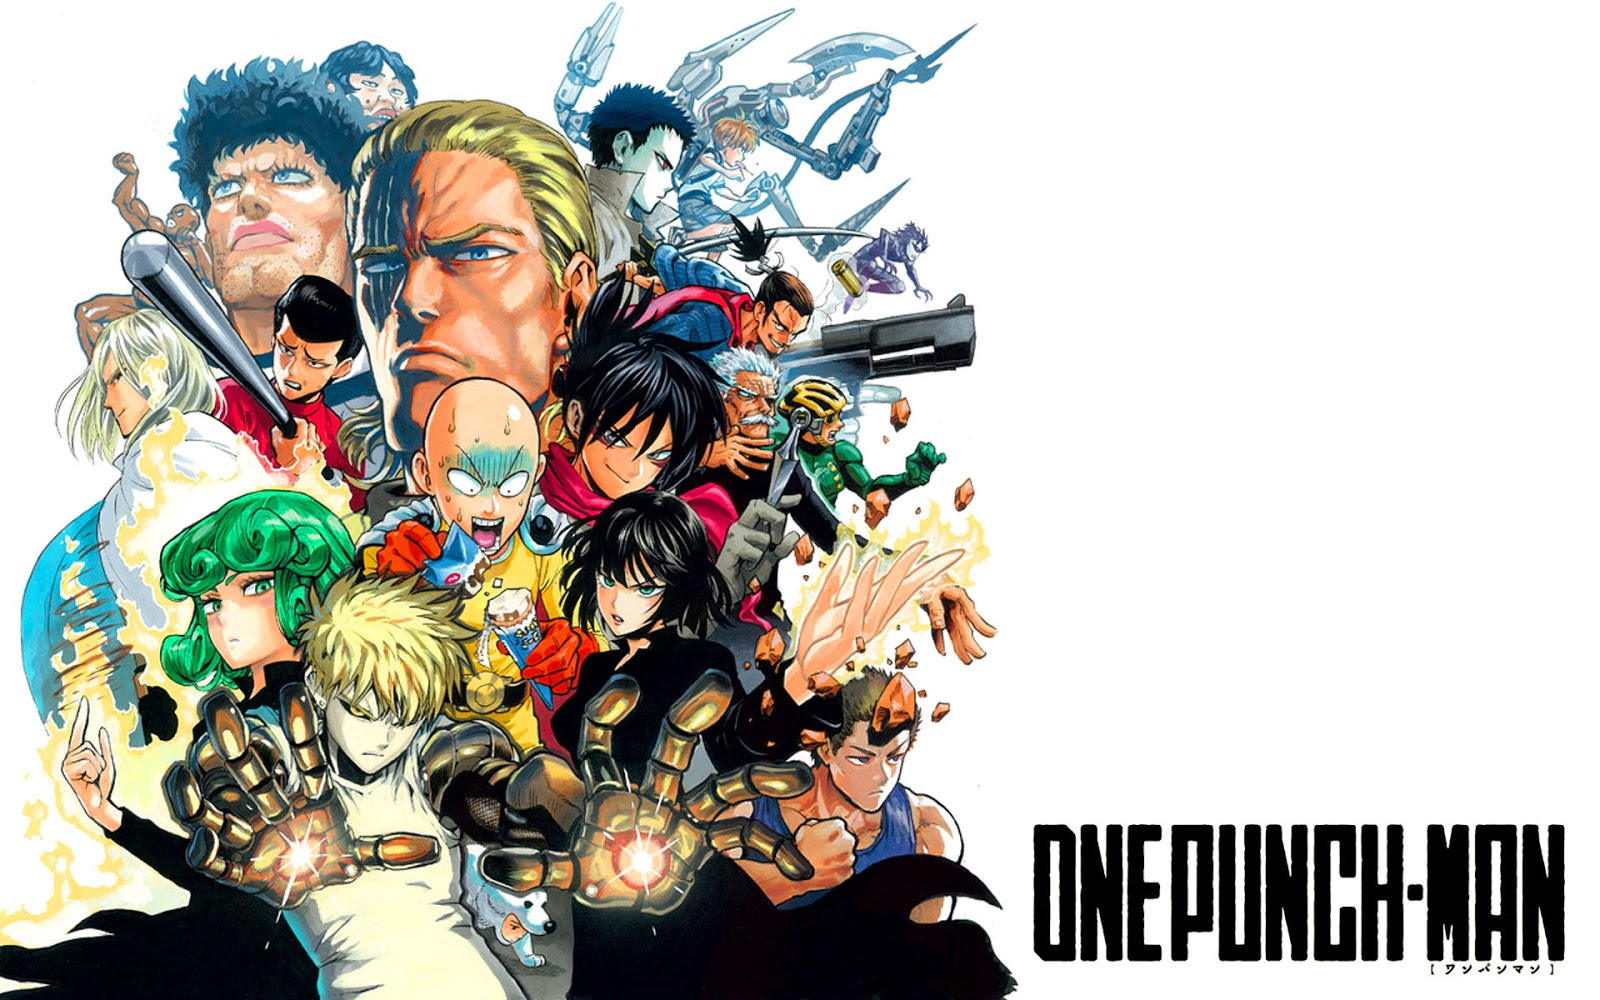 Must see Wallpaper Android One Punch Man - superhero-class-One-Punch-Man-Anime-Wallpaper-HD-2015  2018_398051      .jpg